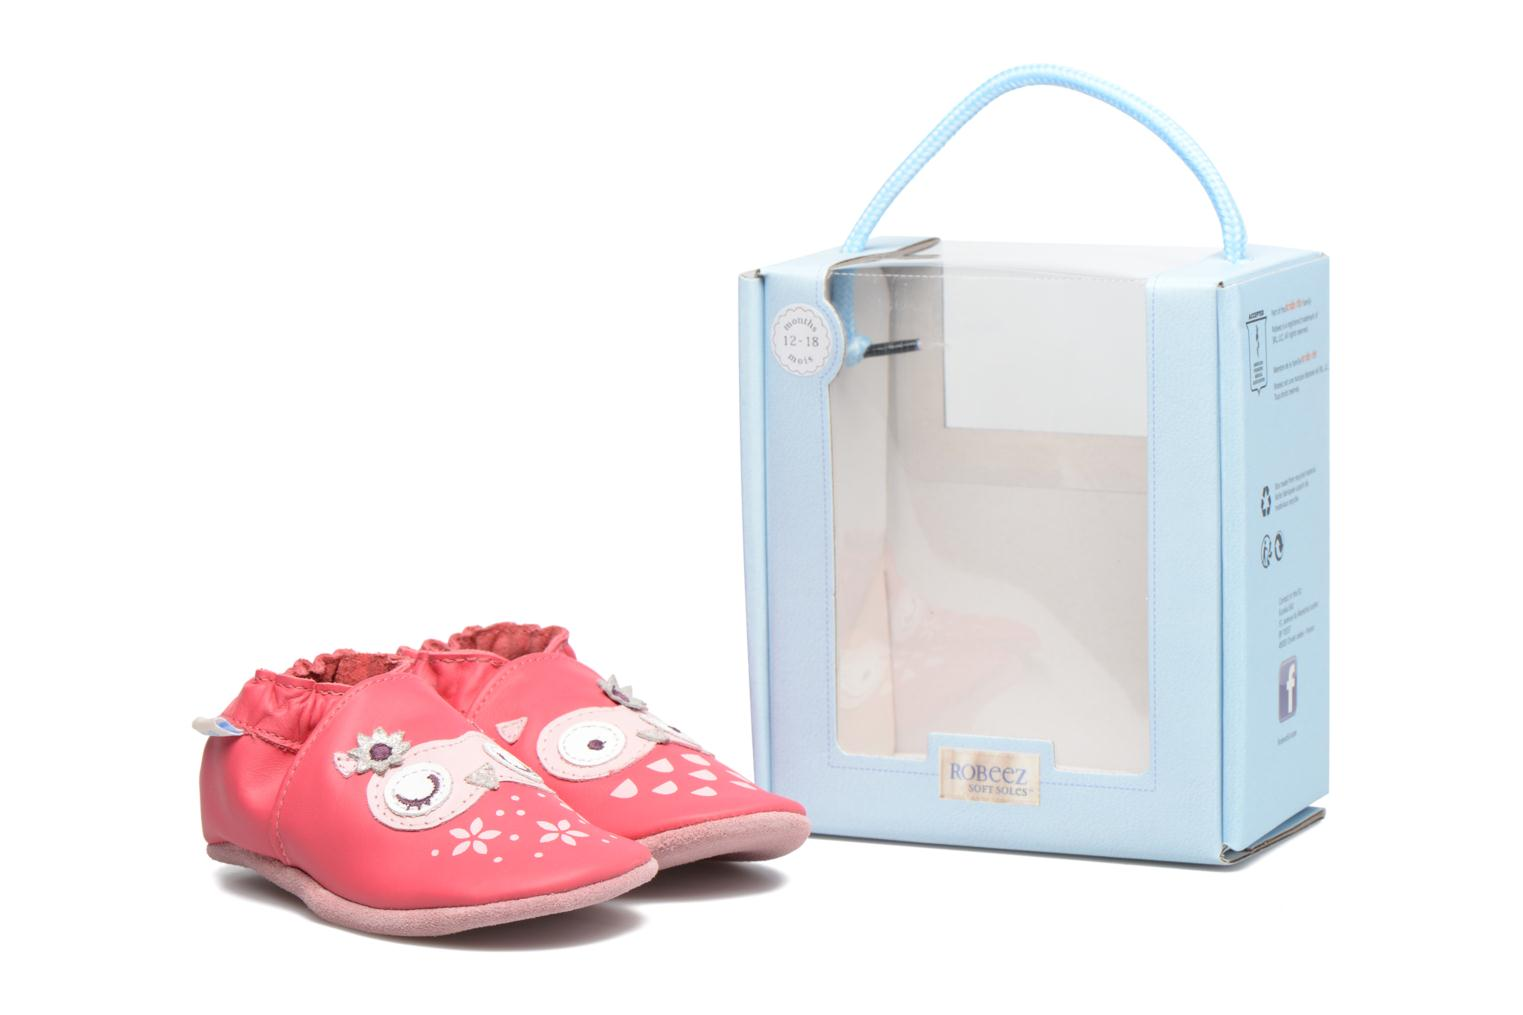 Chaussons Robeez Snowy Owl Rose vue 3/4